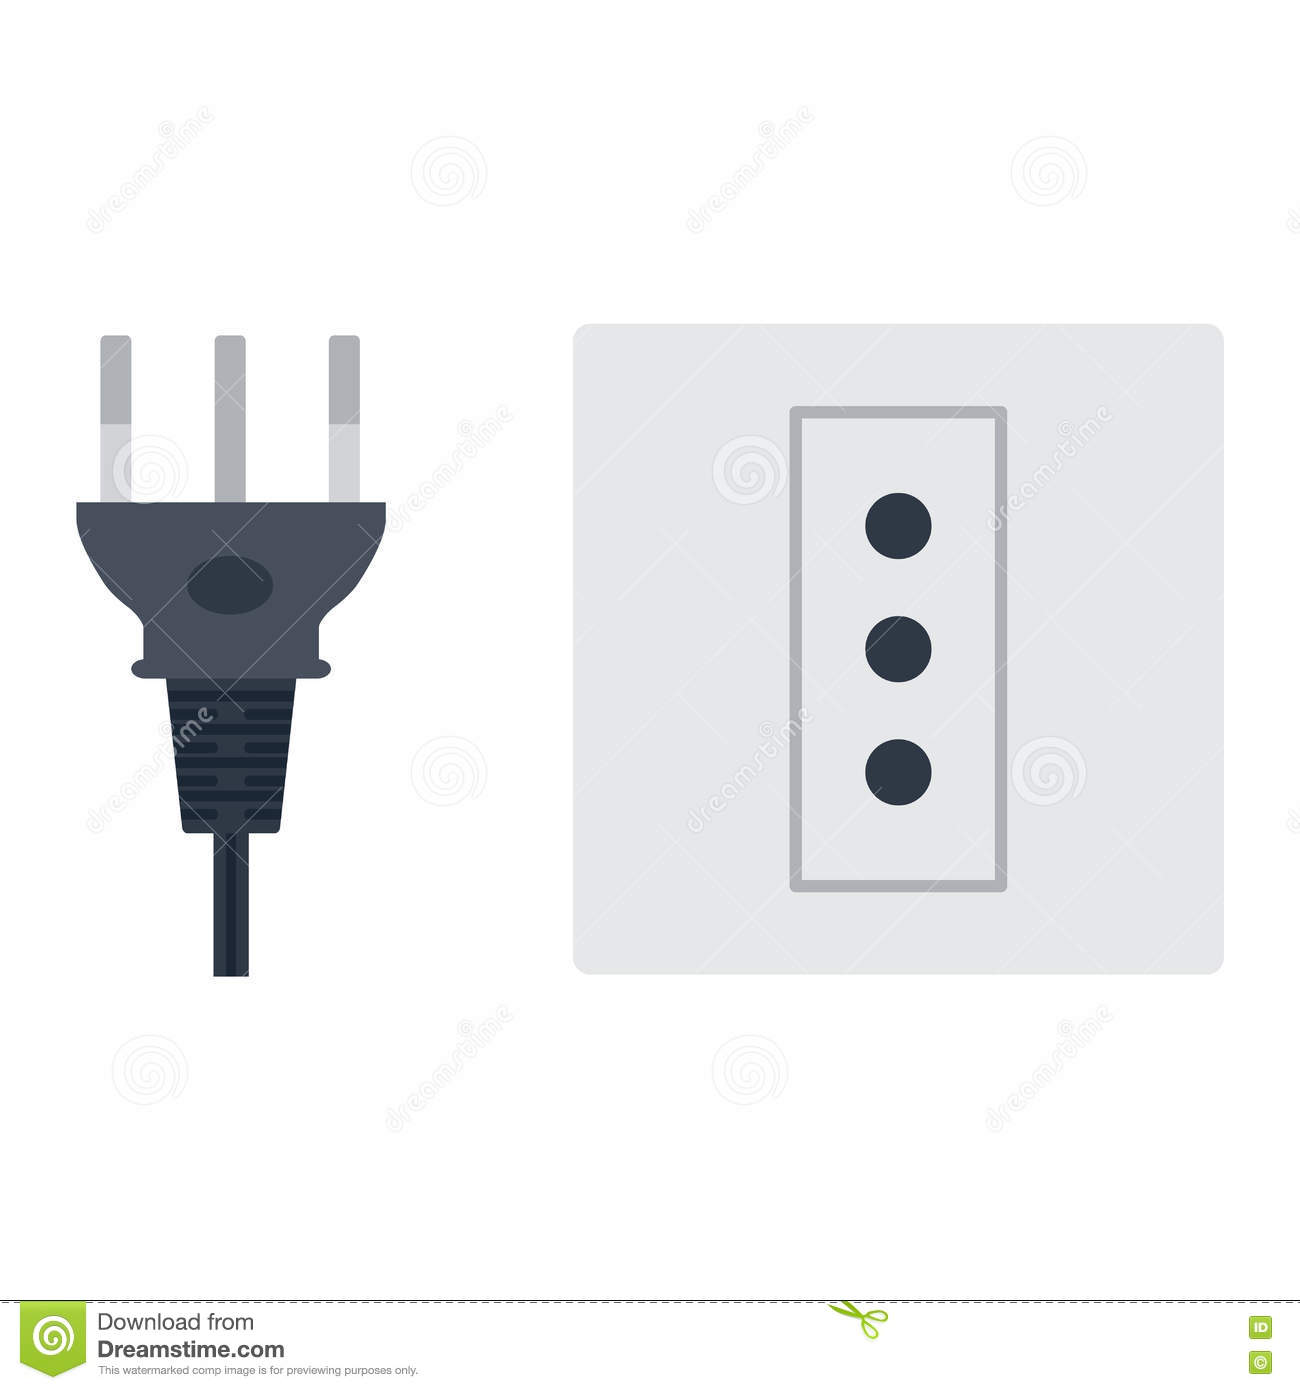 hight resolution of electric outlet illustration on white background energy socket electrical outlet plug appliance interior icon wire cable cord connection electrical outlet